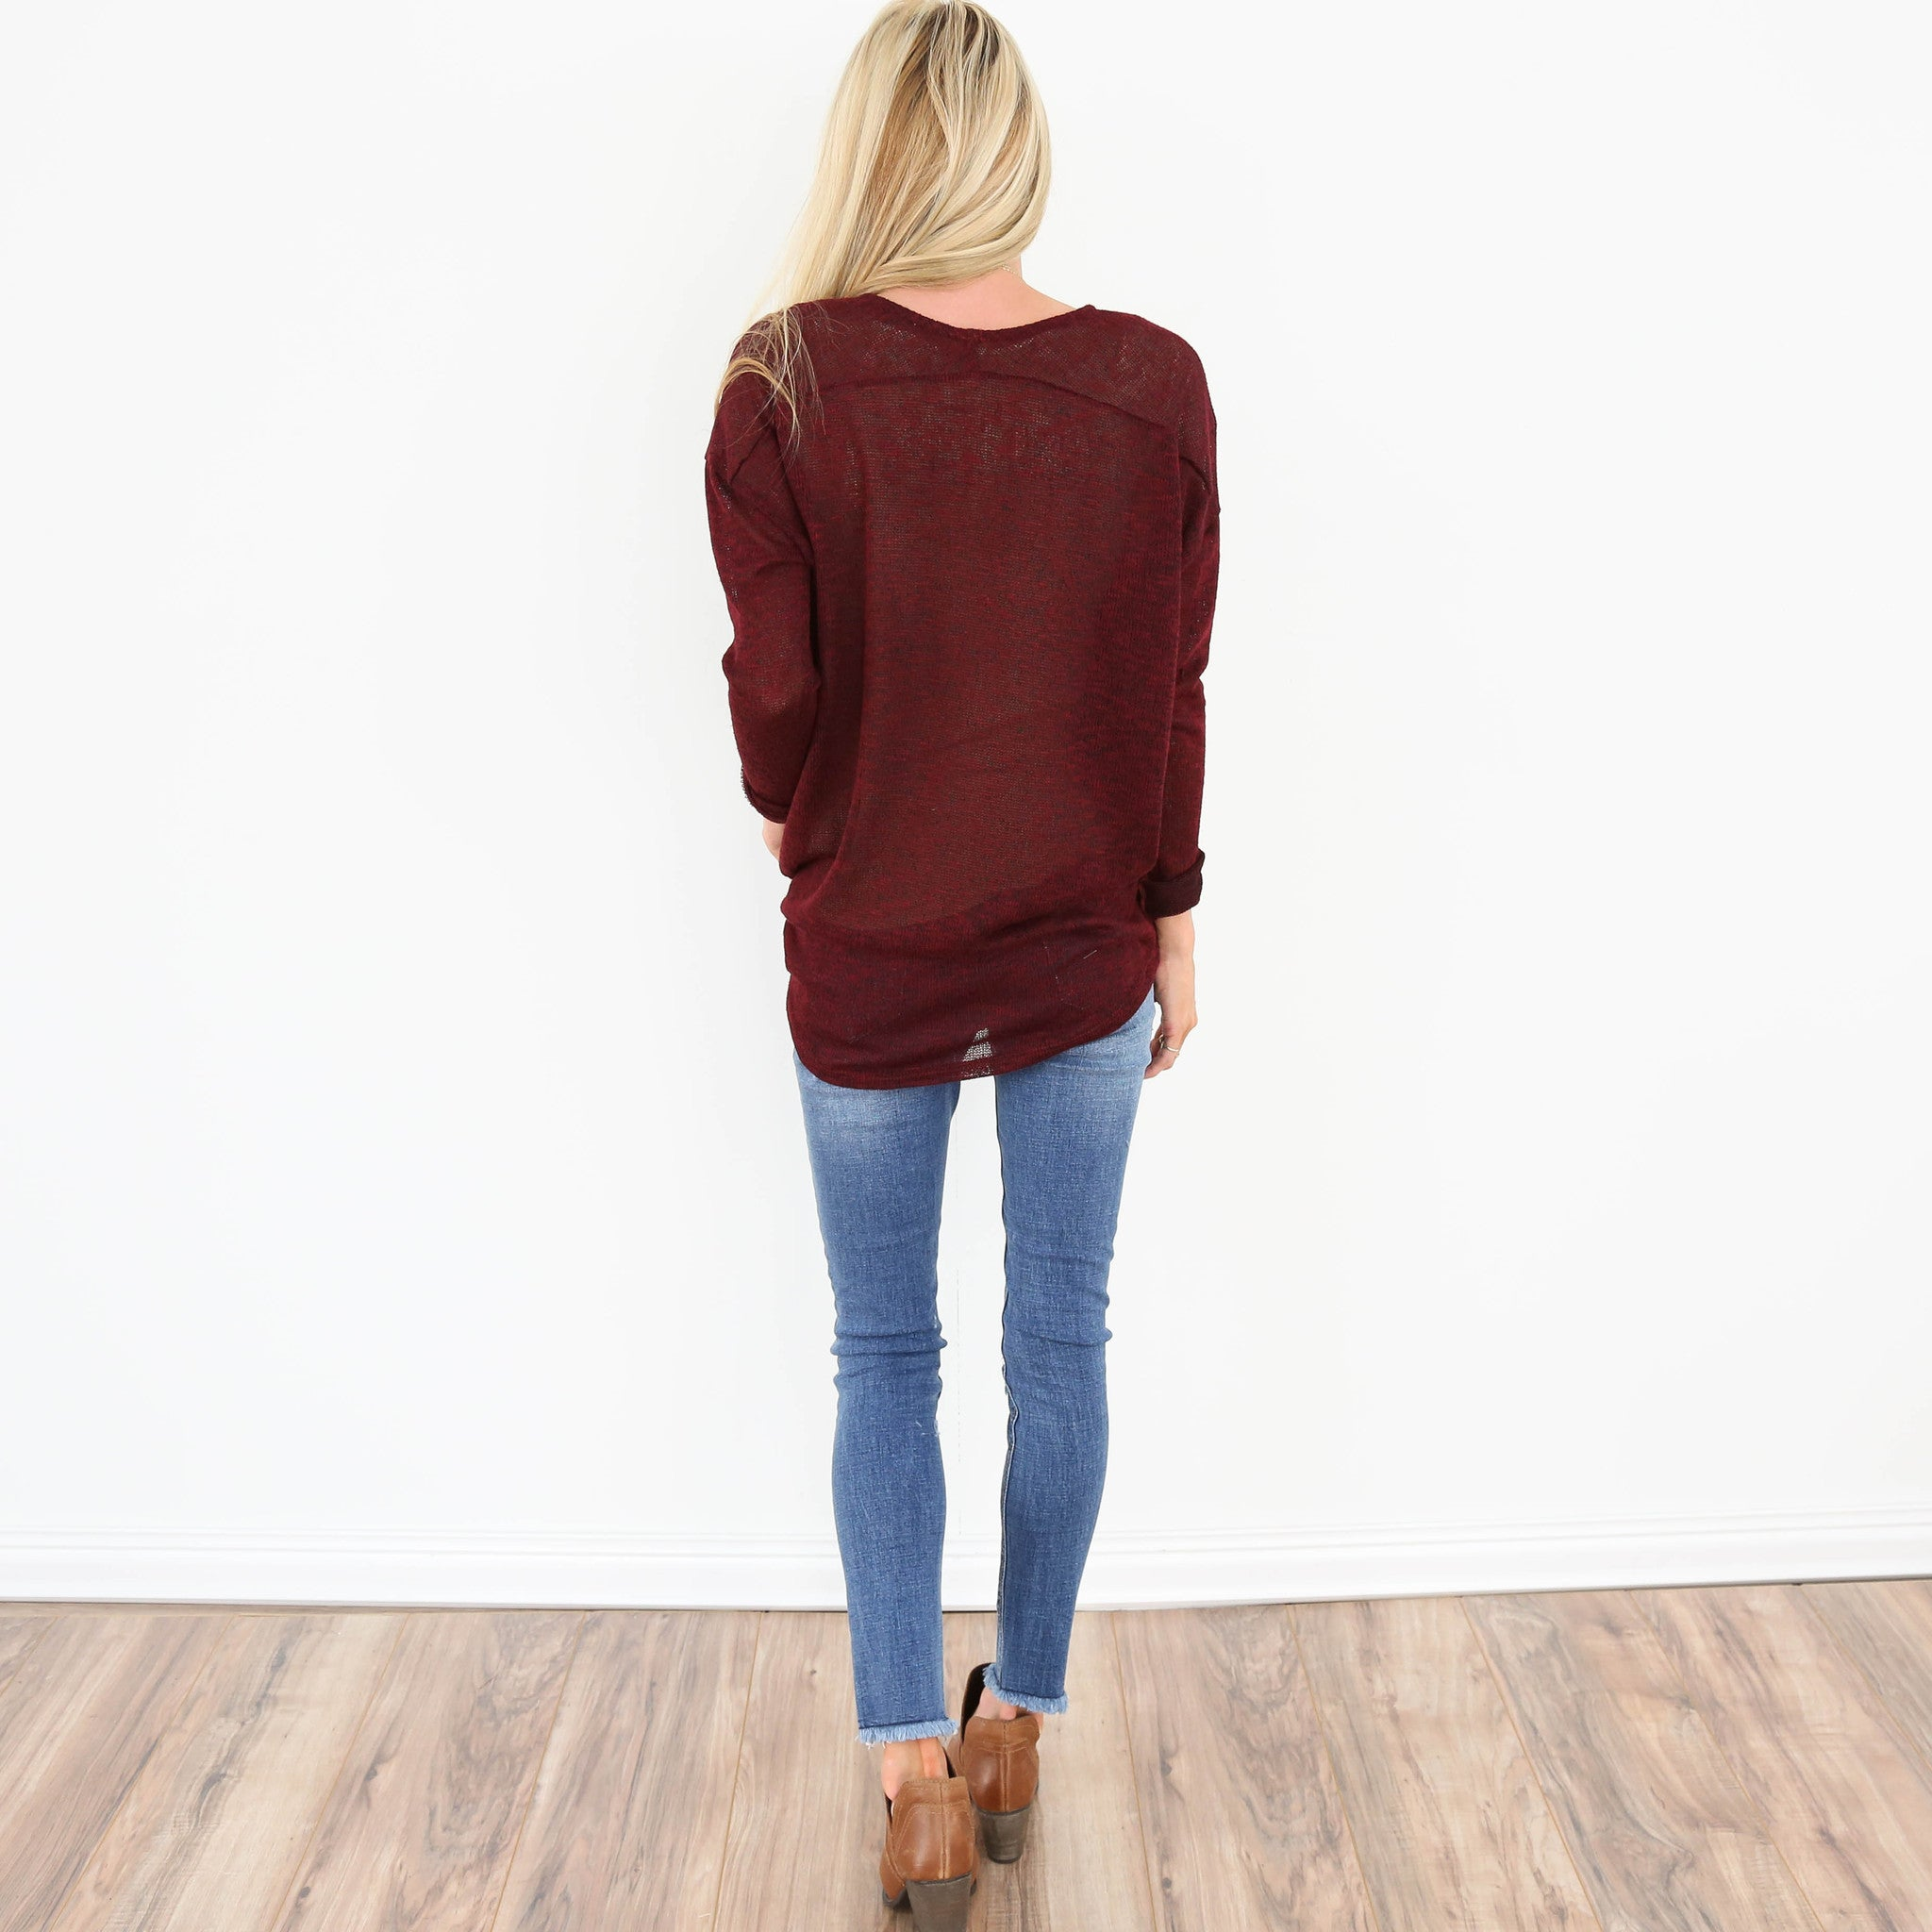 Angie Sweater in Burgundy